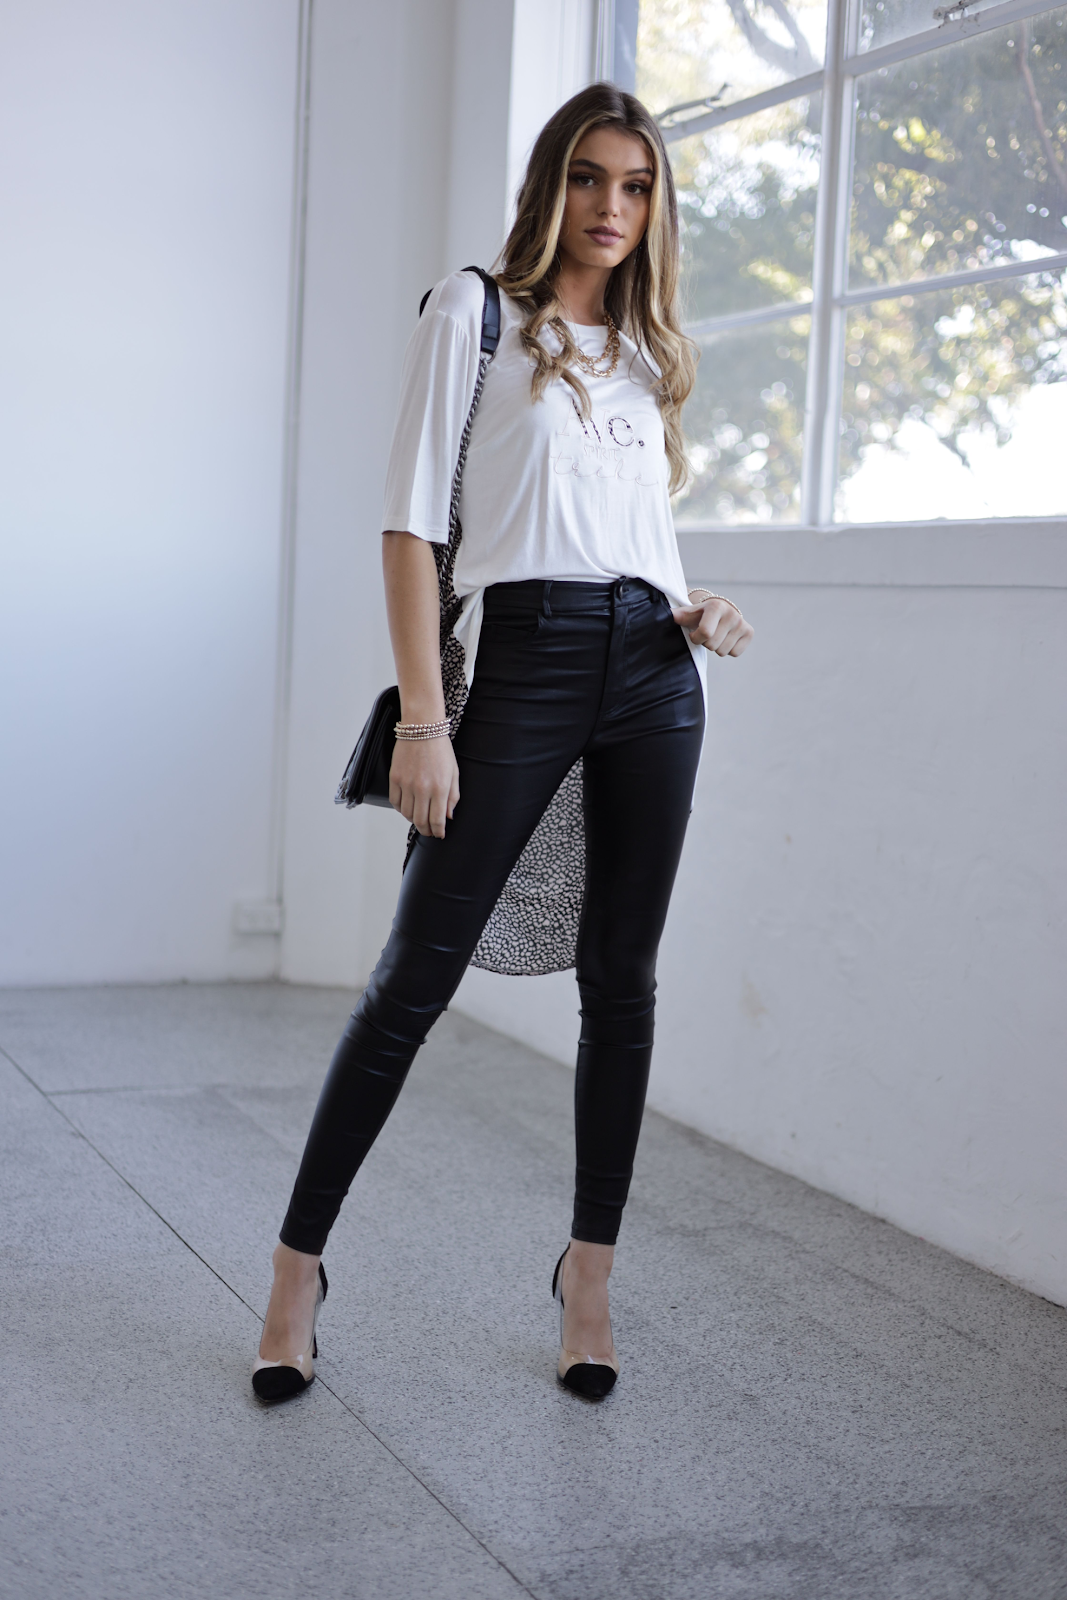 Macintosh HD:Users:hayleycooper:Documents:MY DOCUMENTS:Clients:Narellan Town Centre:Written Content Autumn Winter 2021:Perfect Jeans Images:Skinny Leg Jeans - Open Secret.jpeg